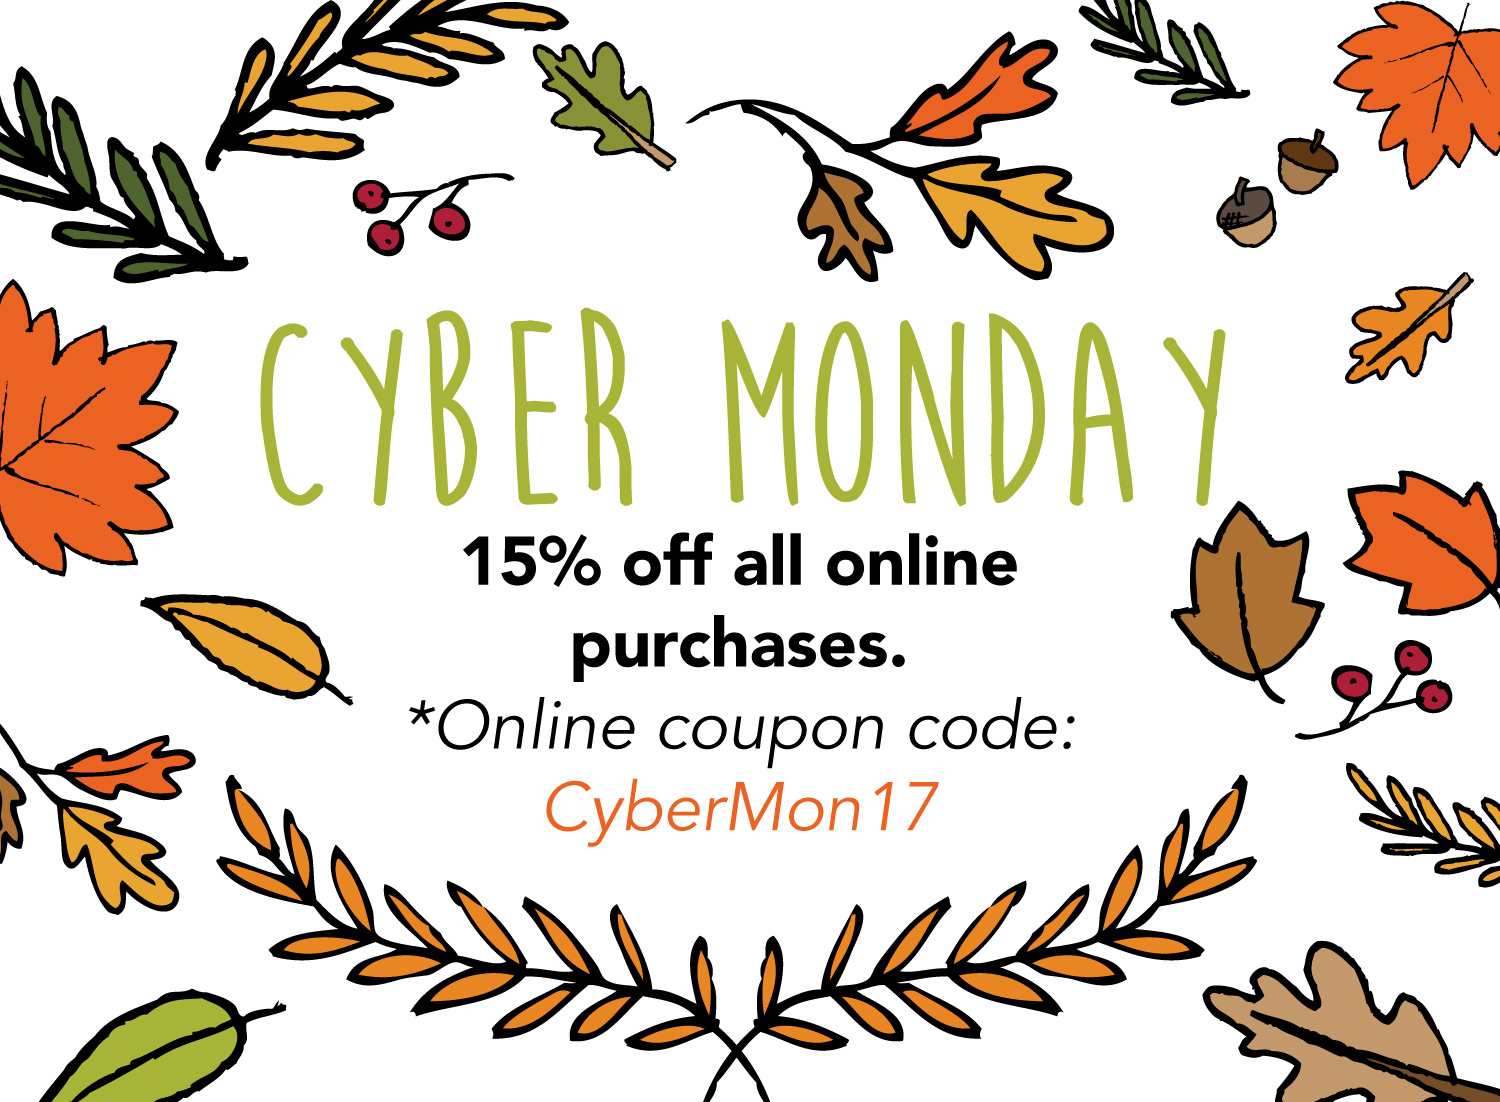 Cyber Monday Deals - Vienna Coffee Company